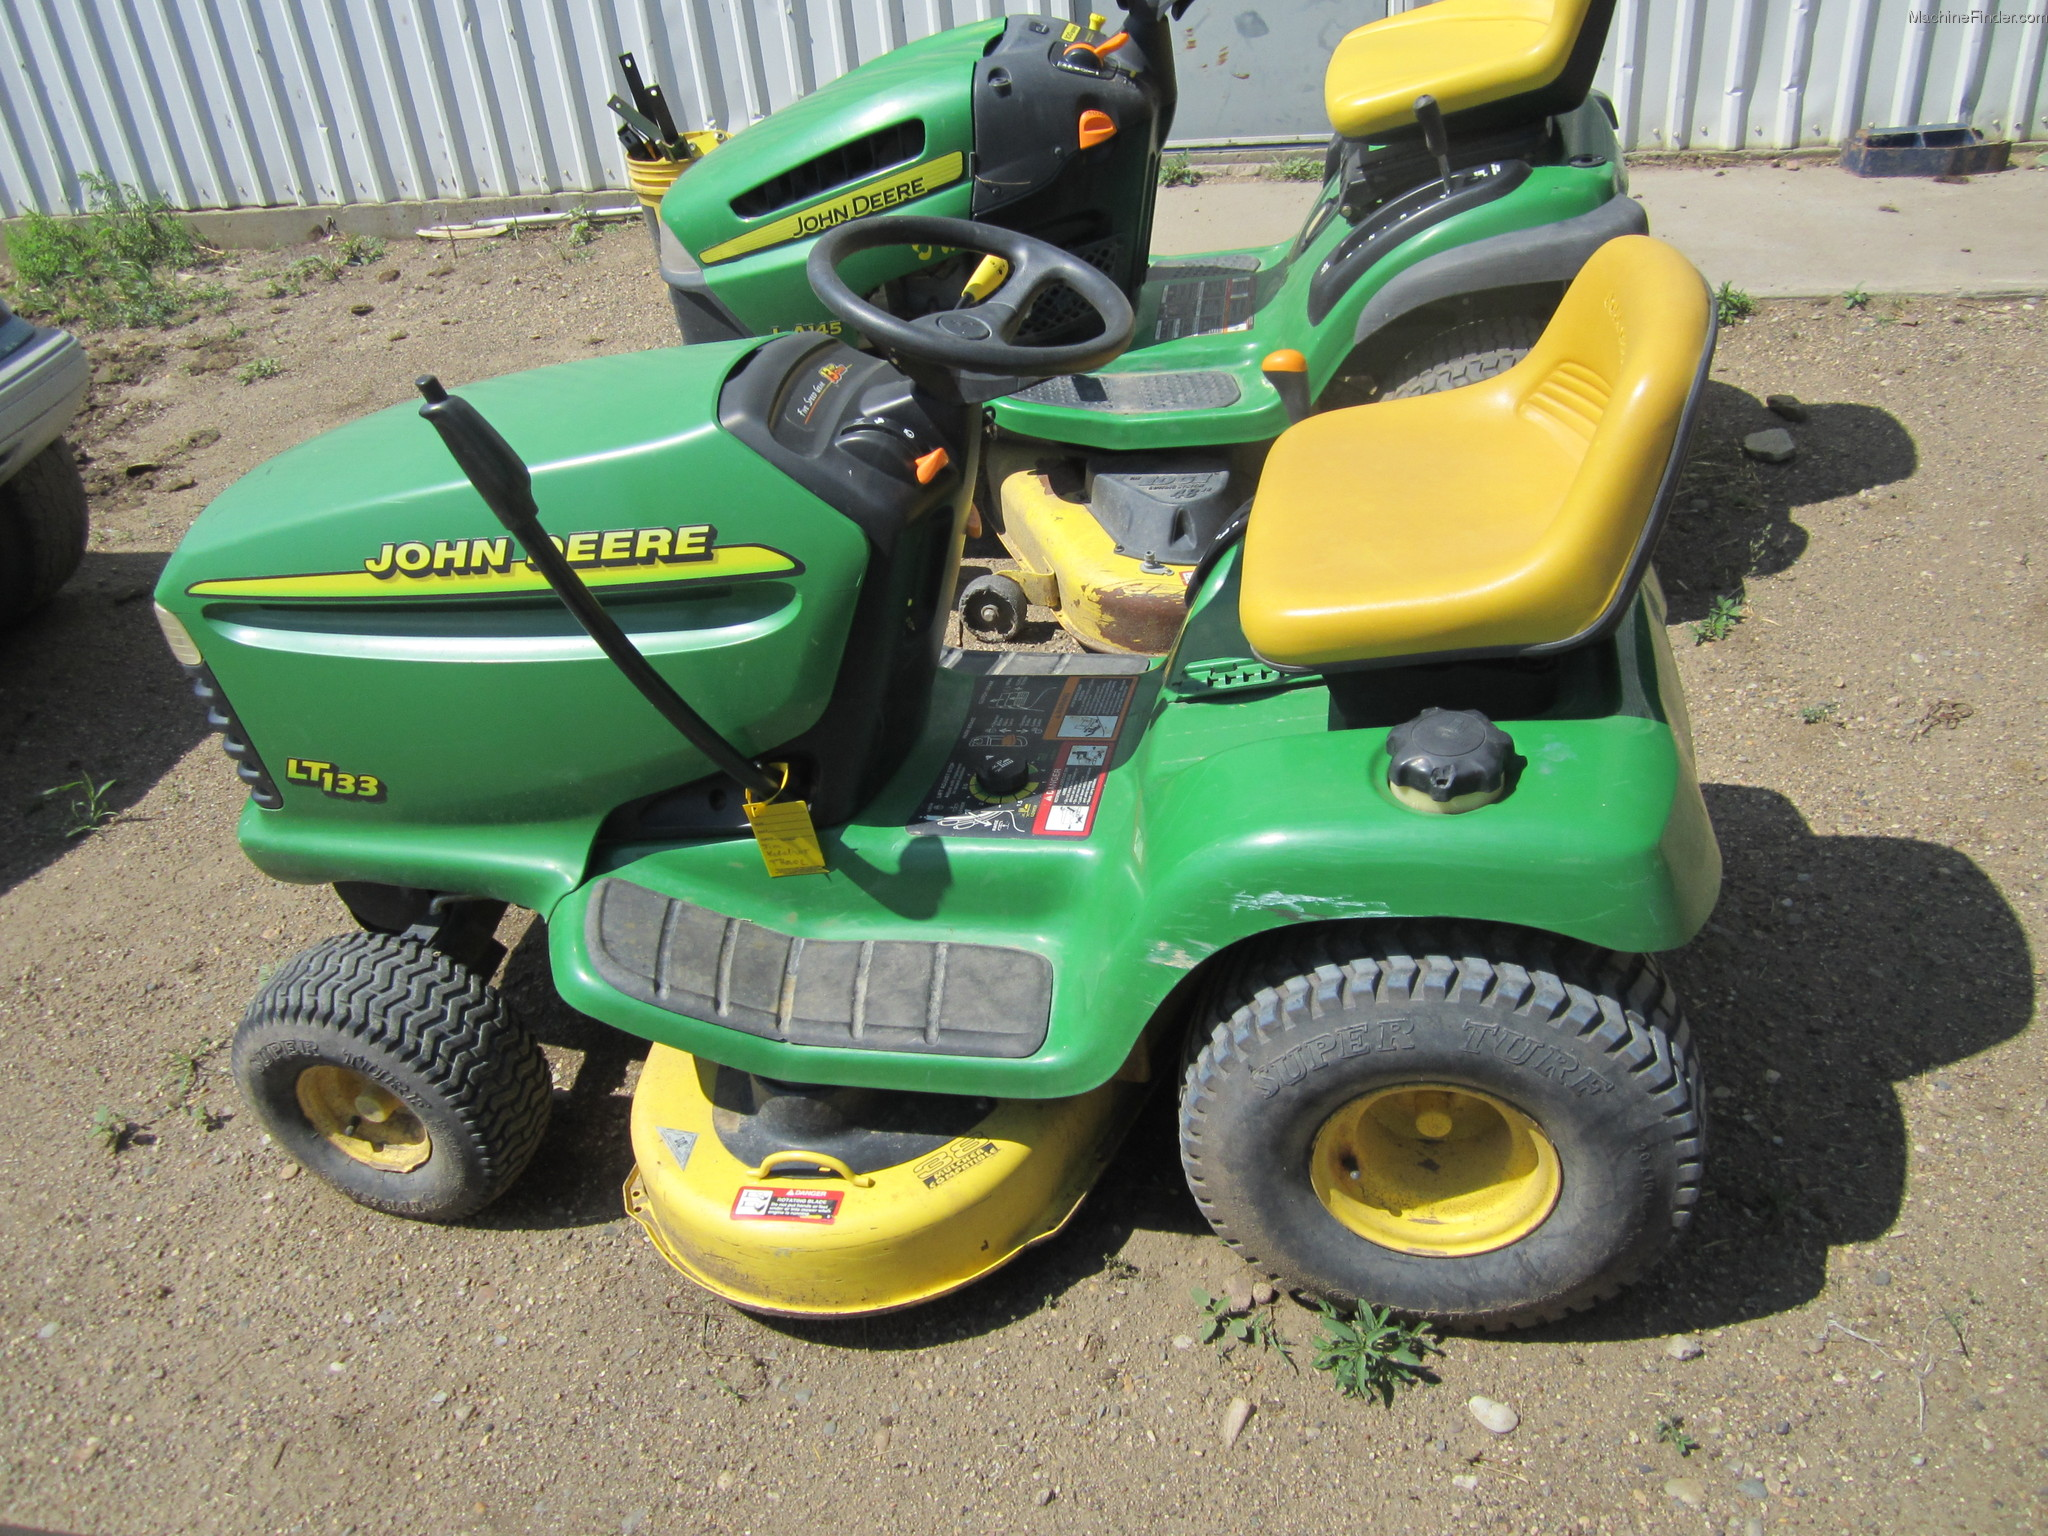 John Deere LT133 Lawn & Garden and Commercial Mowing ...